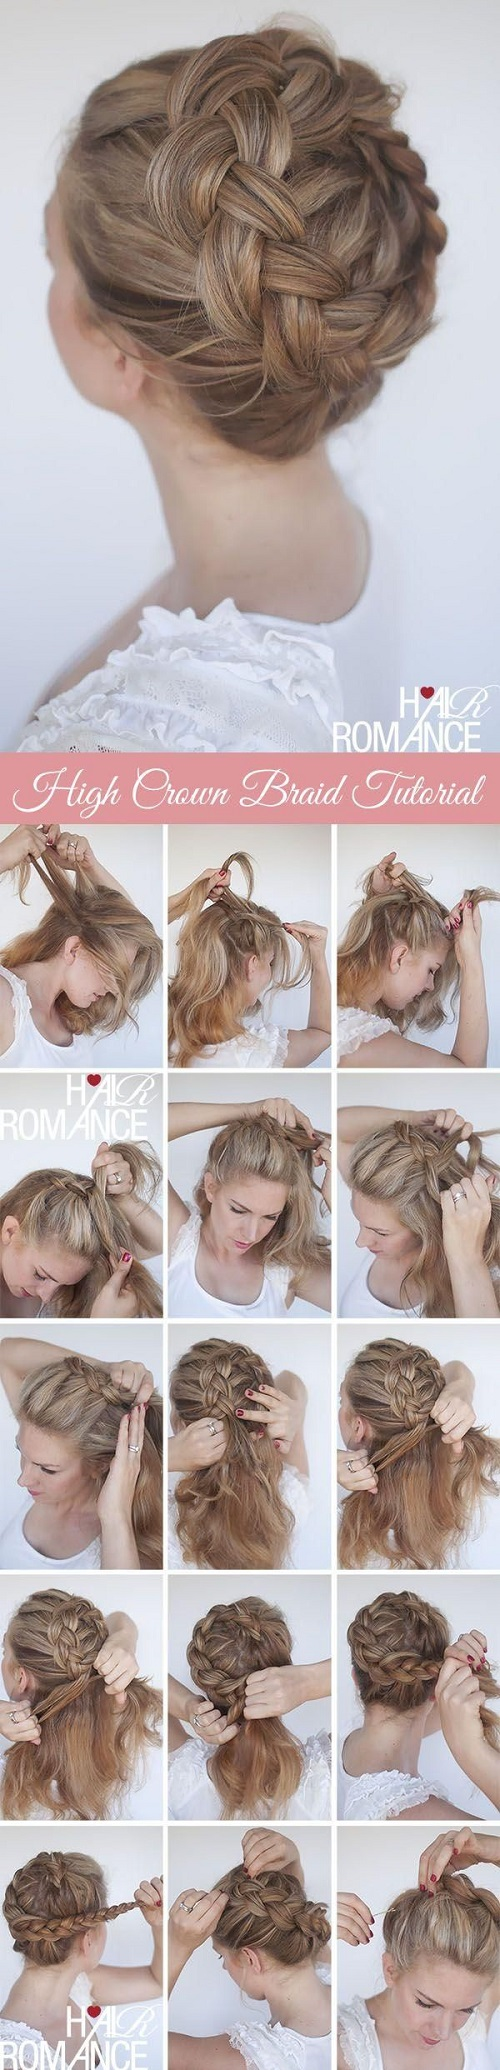 Crown Braid Tutorial